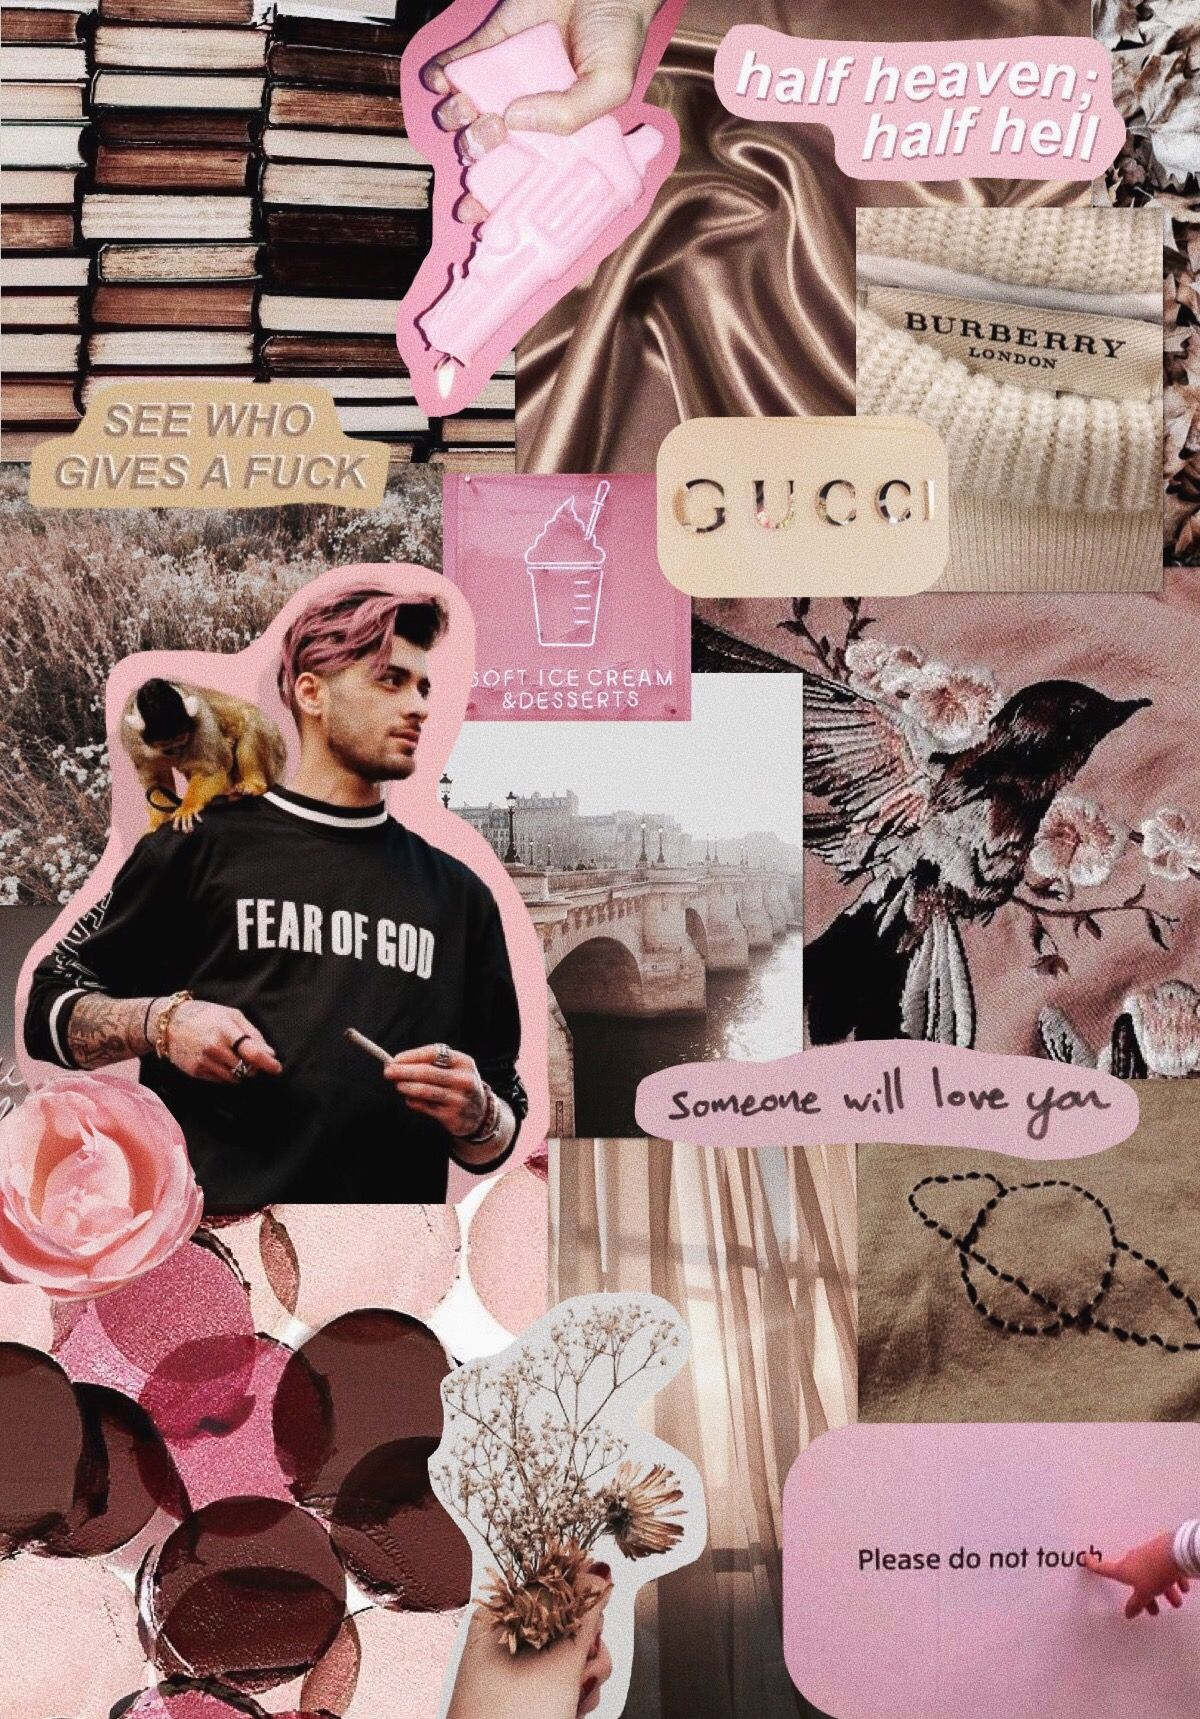 A Zayn Wallpaper For Y All Harrygoluckyy Zayn Zaynmalik Zaynaesthetic Aesthetic Zaynmalikaesth Zayn Malik Wallpaper One Direction Wallpaper Zayn Mailk